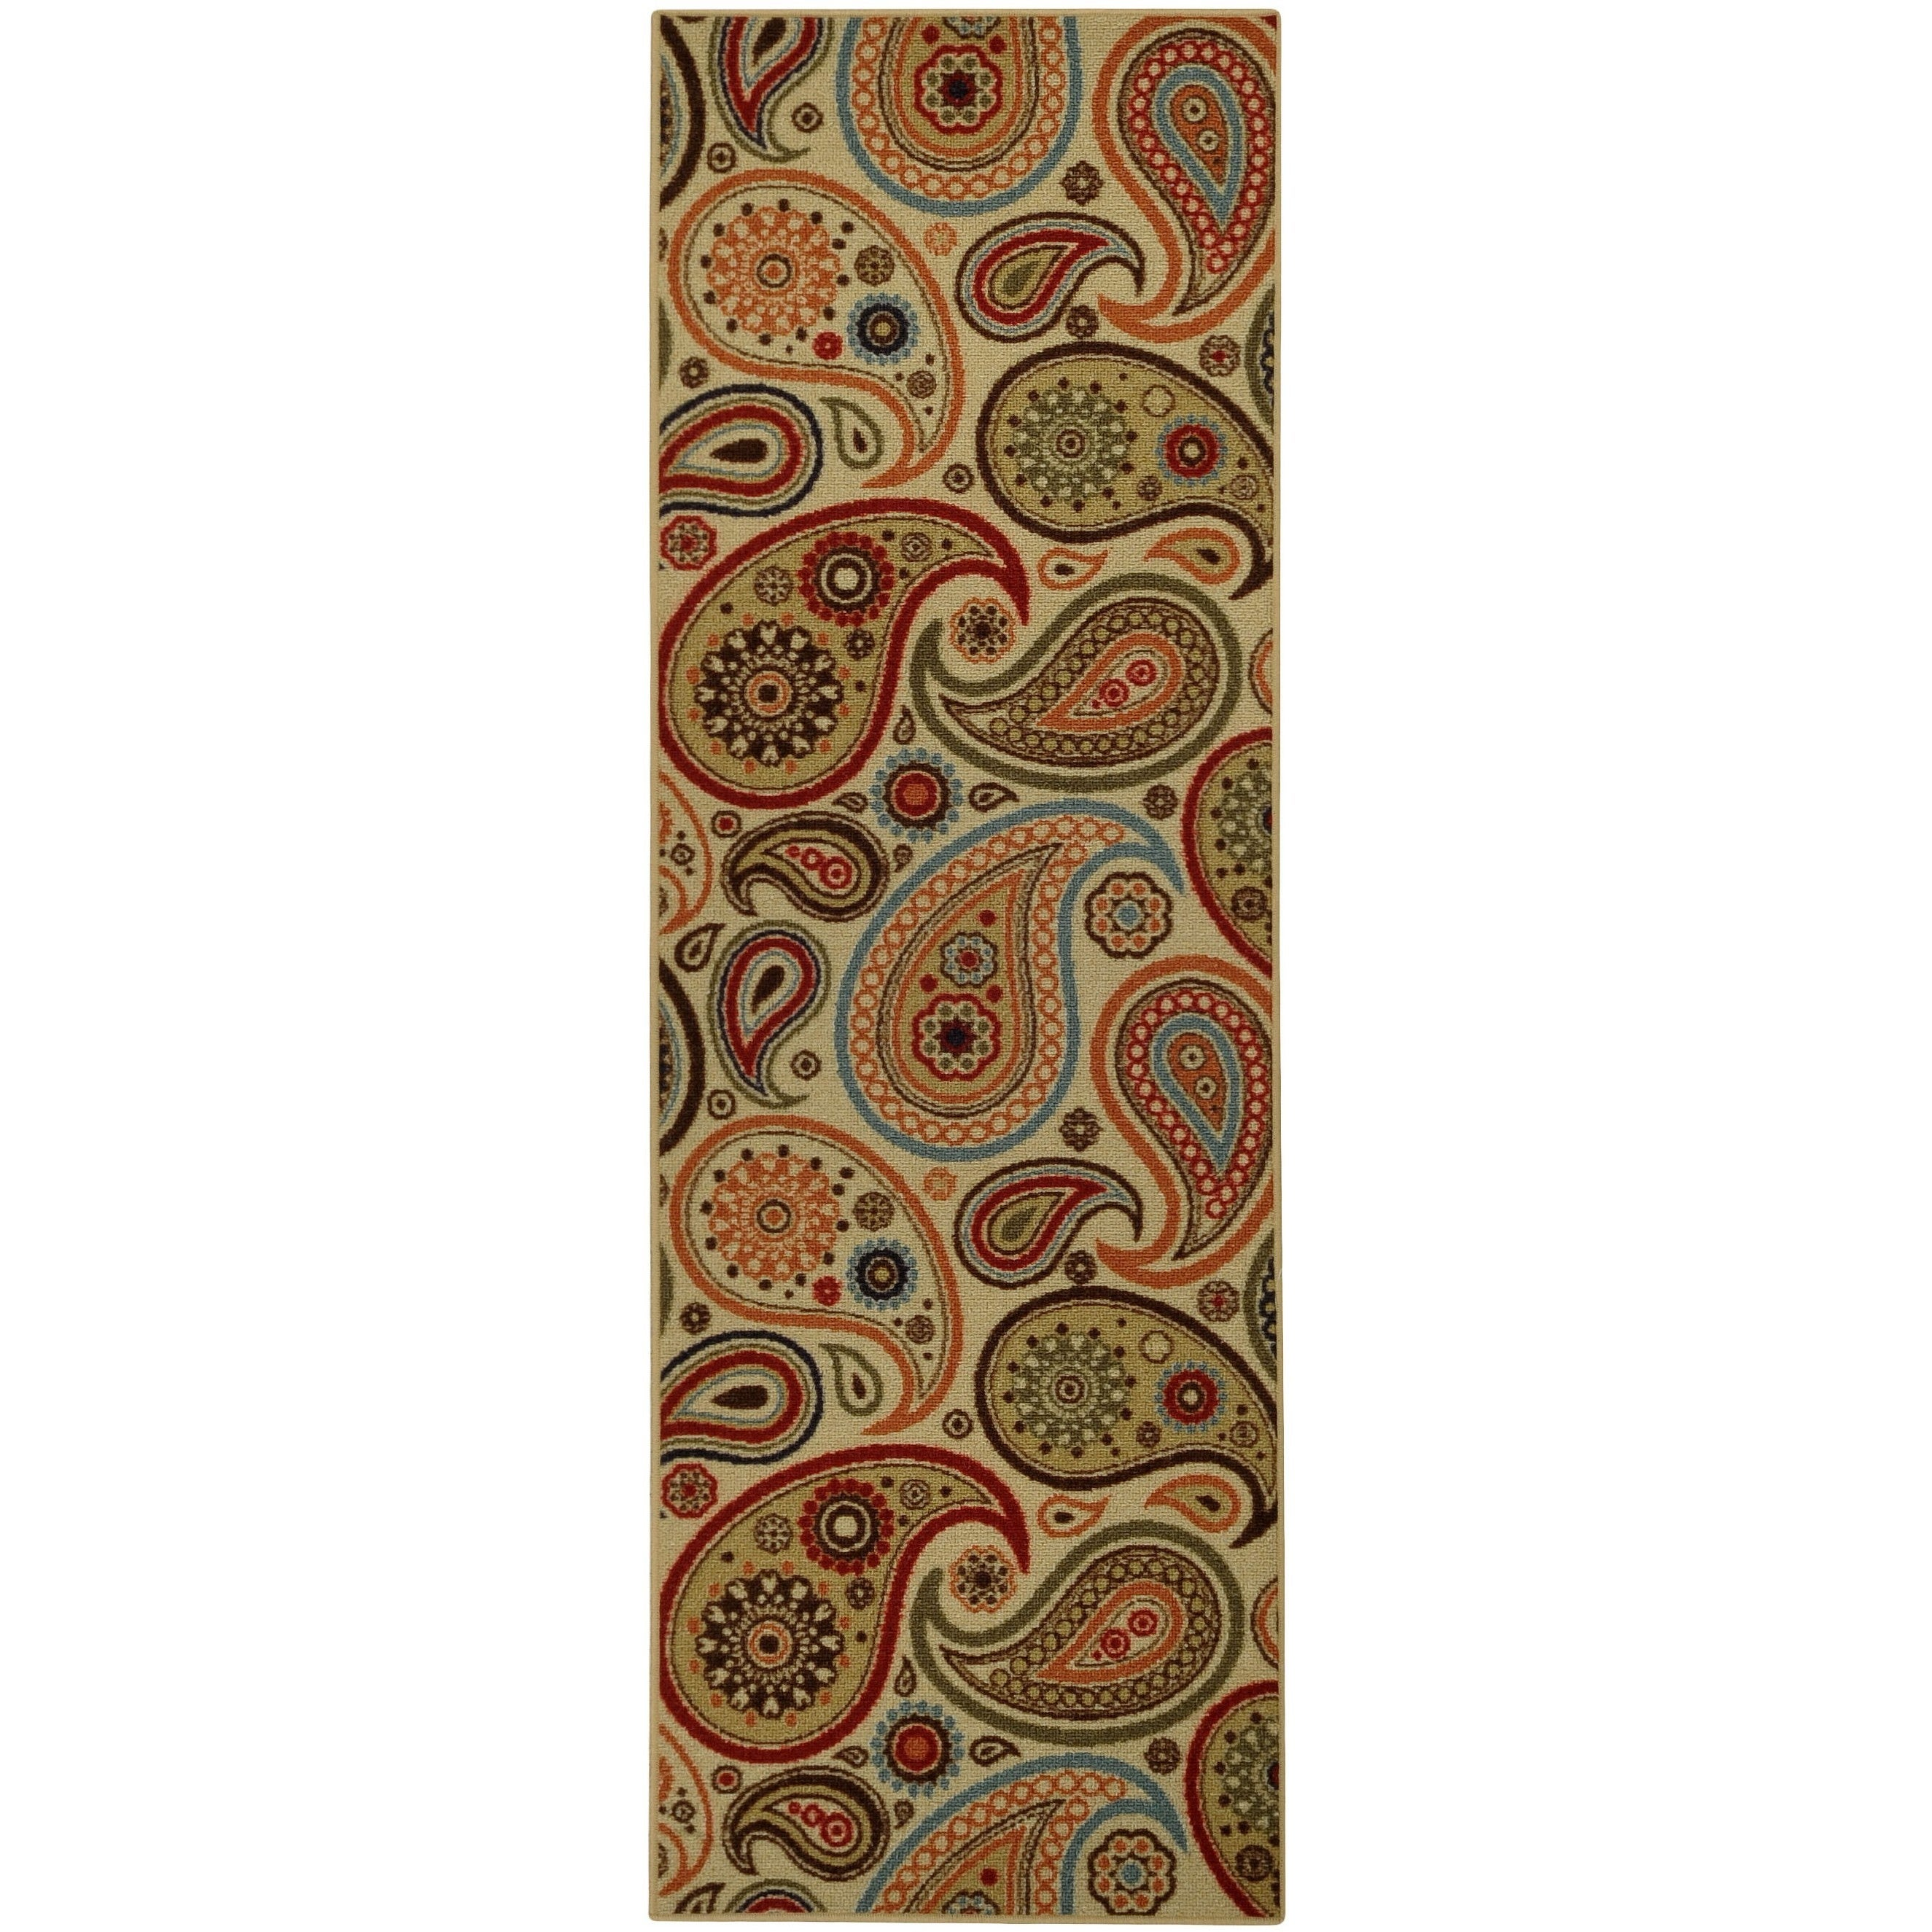 "Rubber Back Ivory Paisley Floral Non-Skid Runner Rug (22"" x 6'9) at Sears.com"